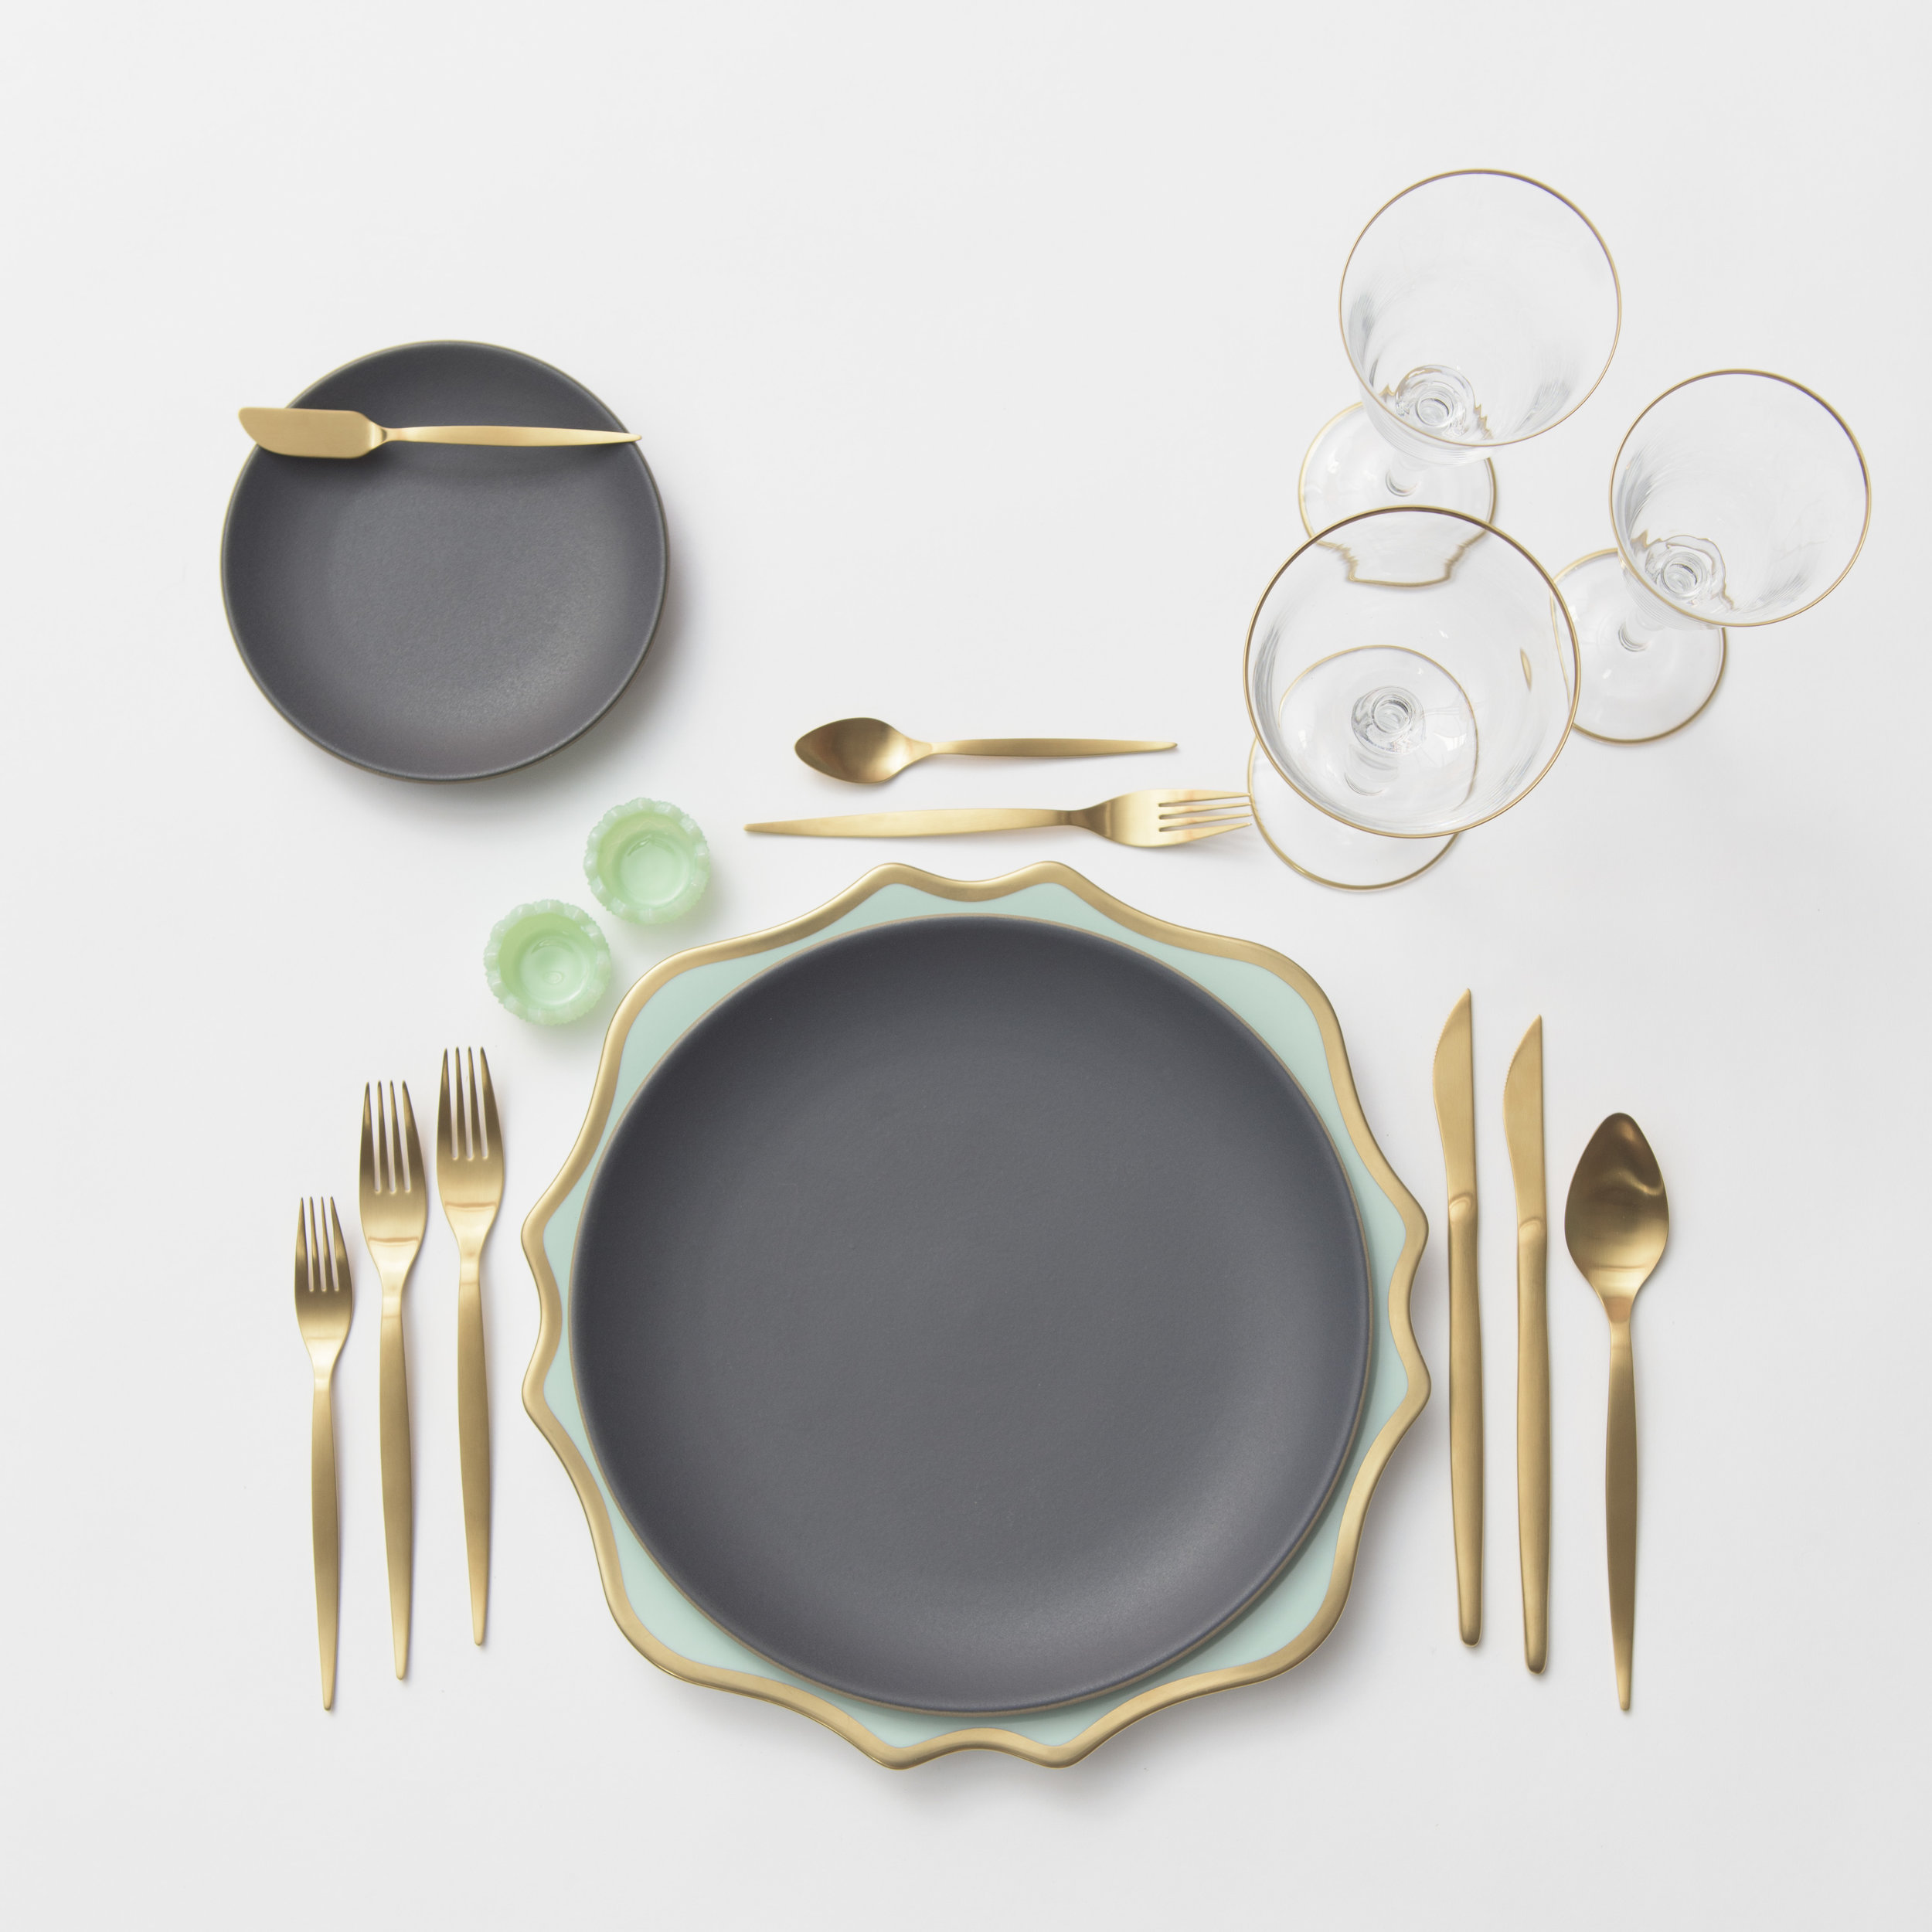 RENT: Anna Weatherley Chargers in Aqua Sky/Gold + Heath Ceramics in Indigo/Slate + Celeste Flatware in Matte Gold + Chloe 24k Gold Rimmed Stemware + Jadeite Crystal Salt Cellars  SHOP: Anna Weatherley Chargers in Aqua Sky/Gold + Chloe 24k Gold Rimmed Stemware